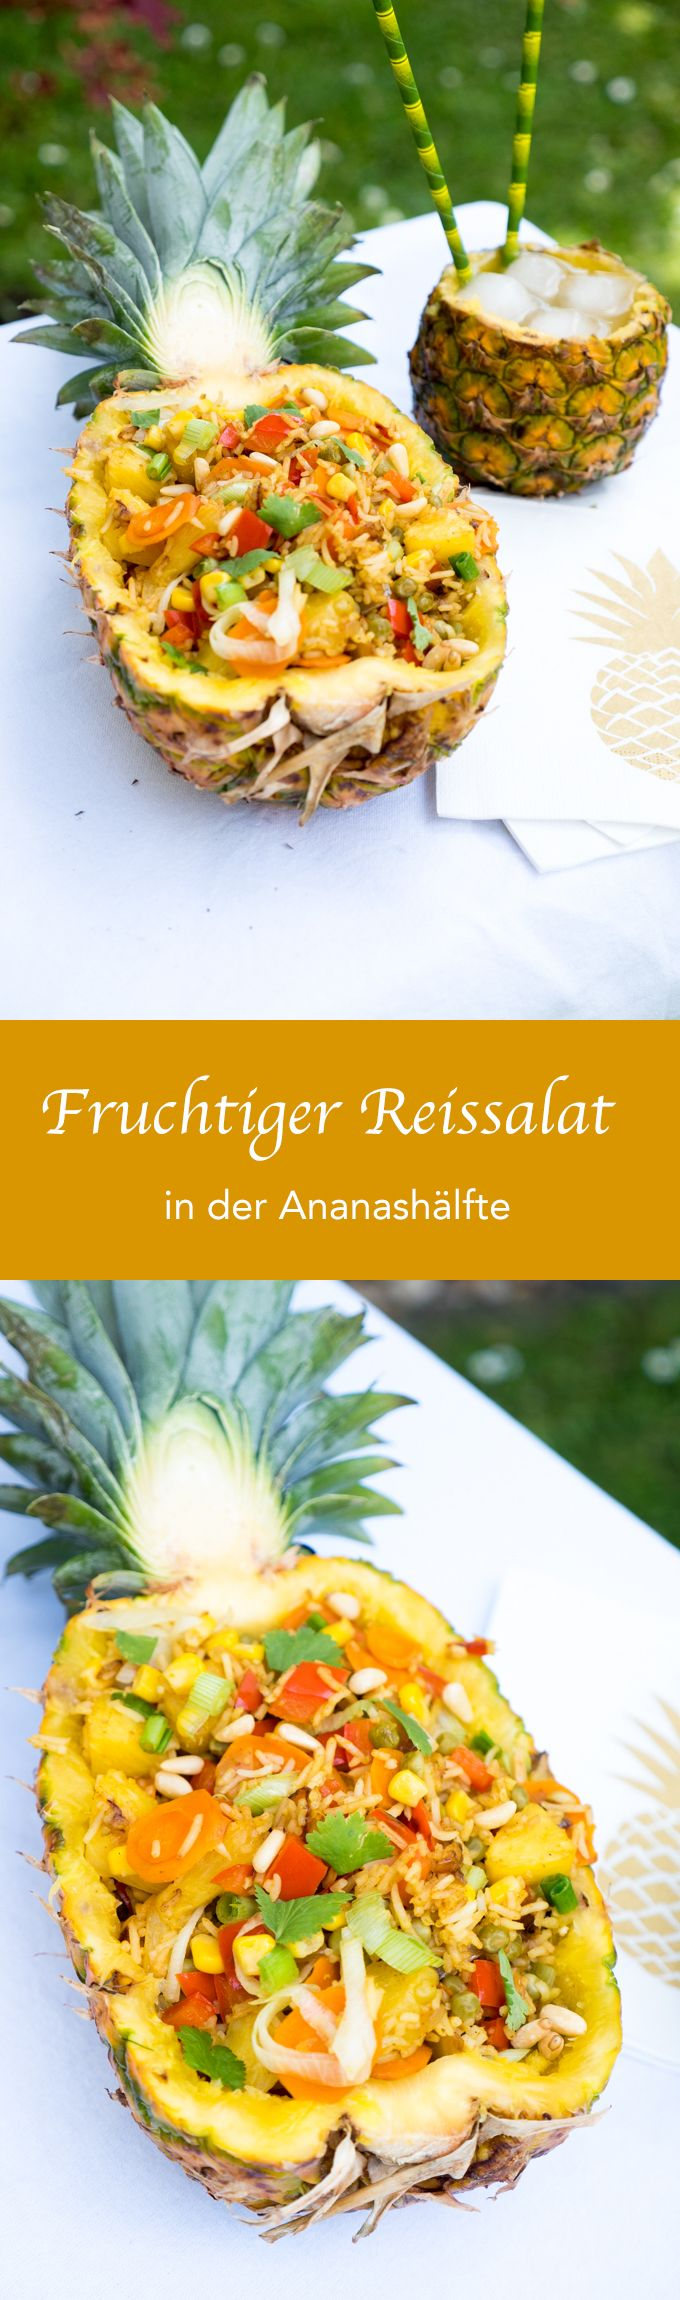 Fruchtiger Reissalat in der Ananas (Vegan Curry)